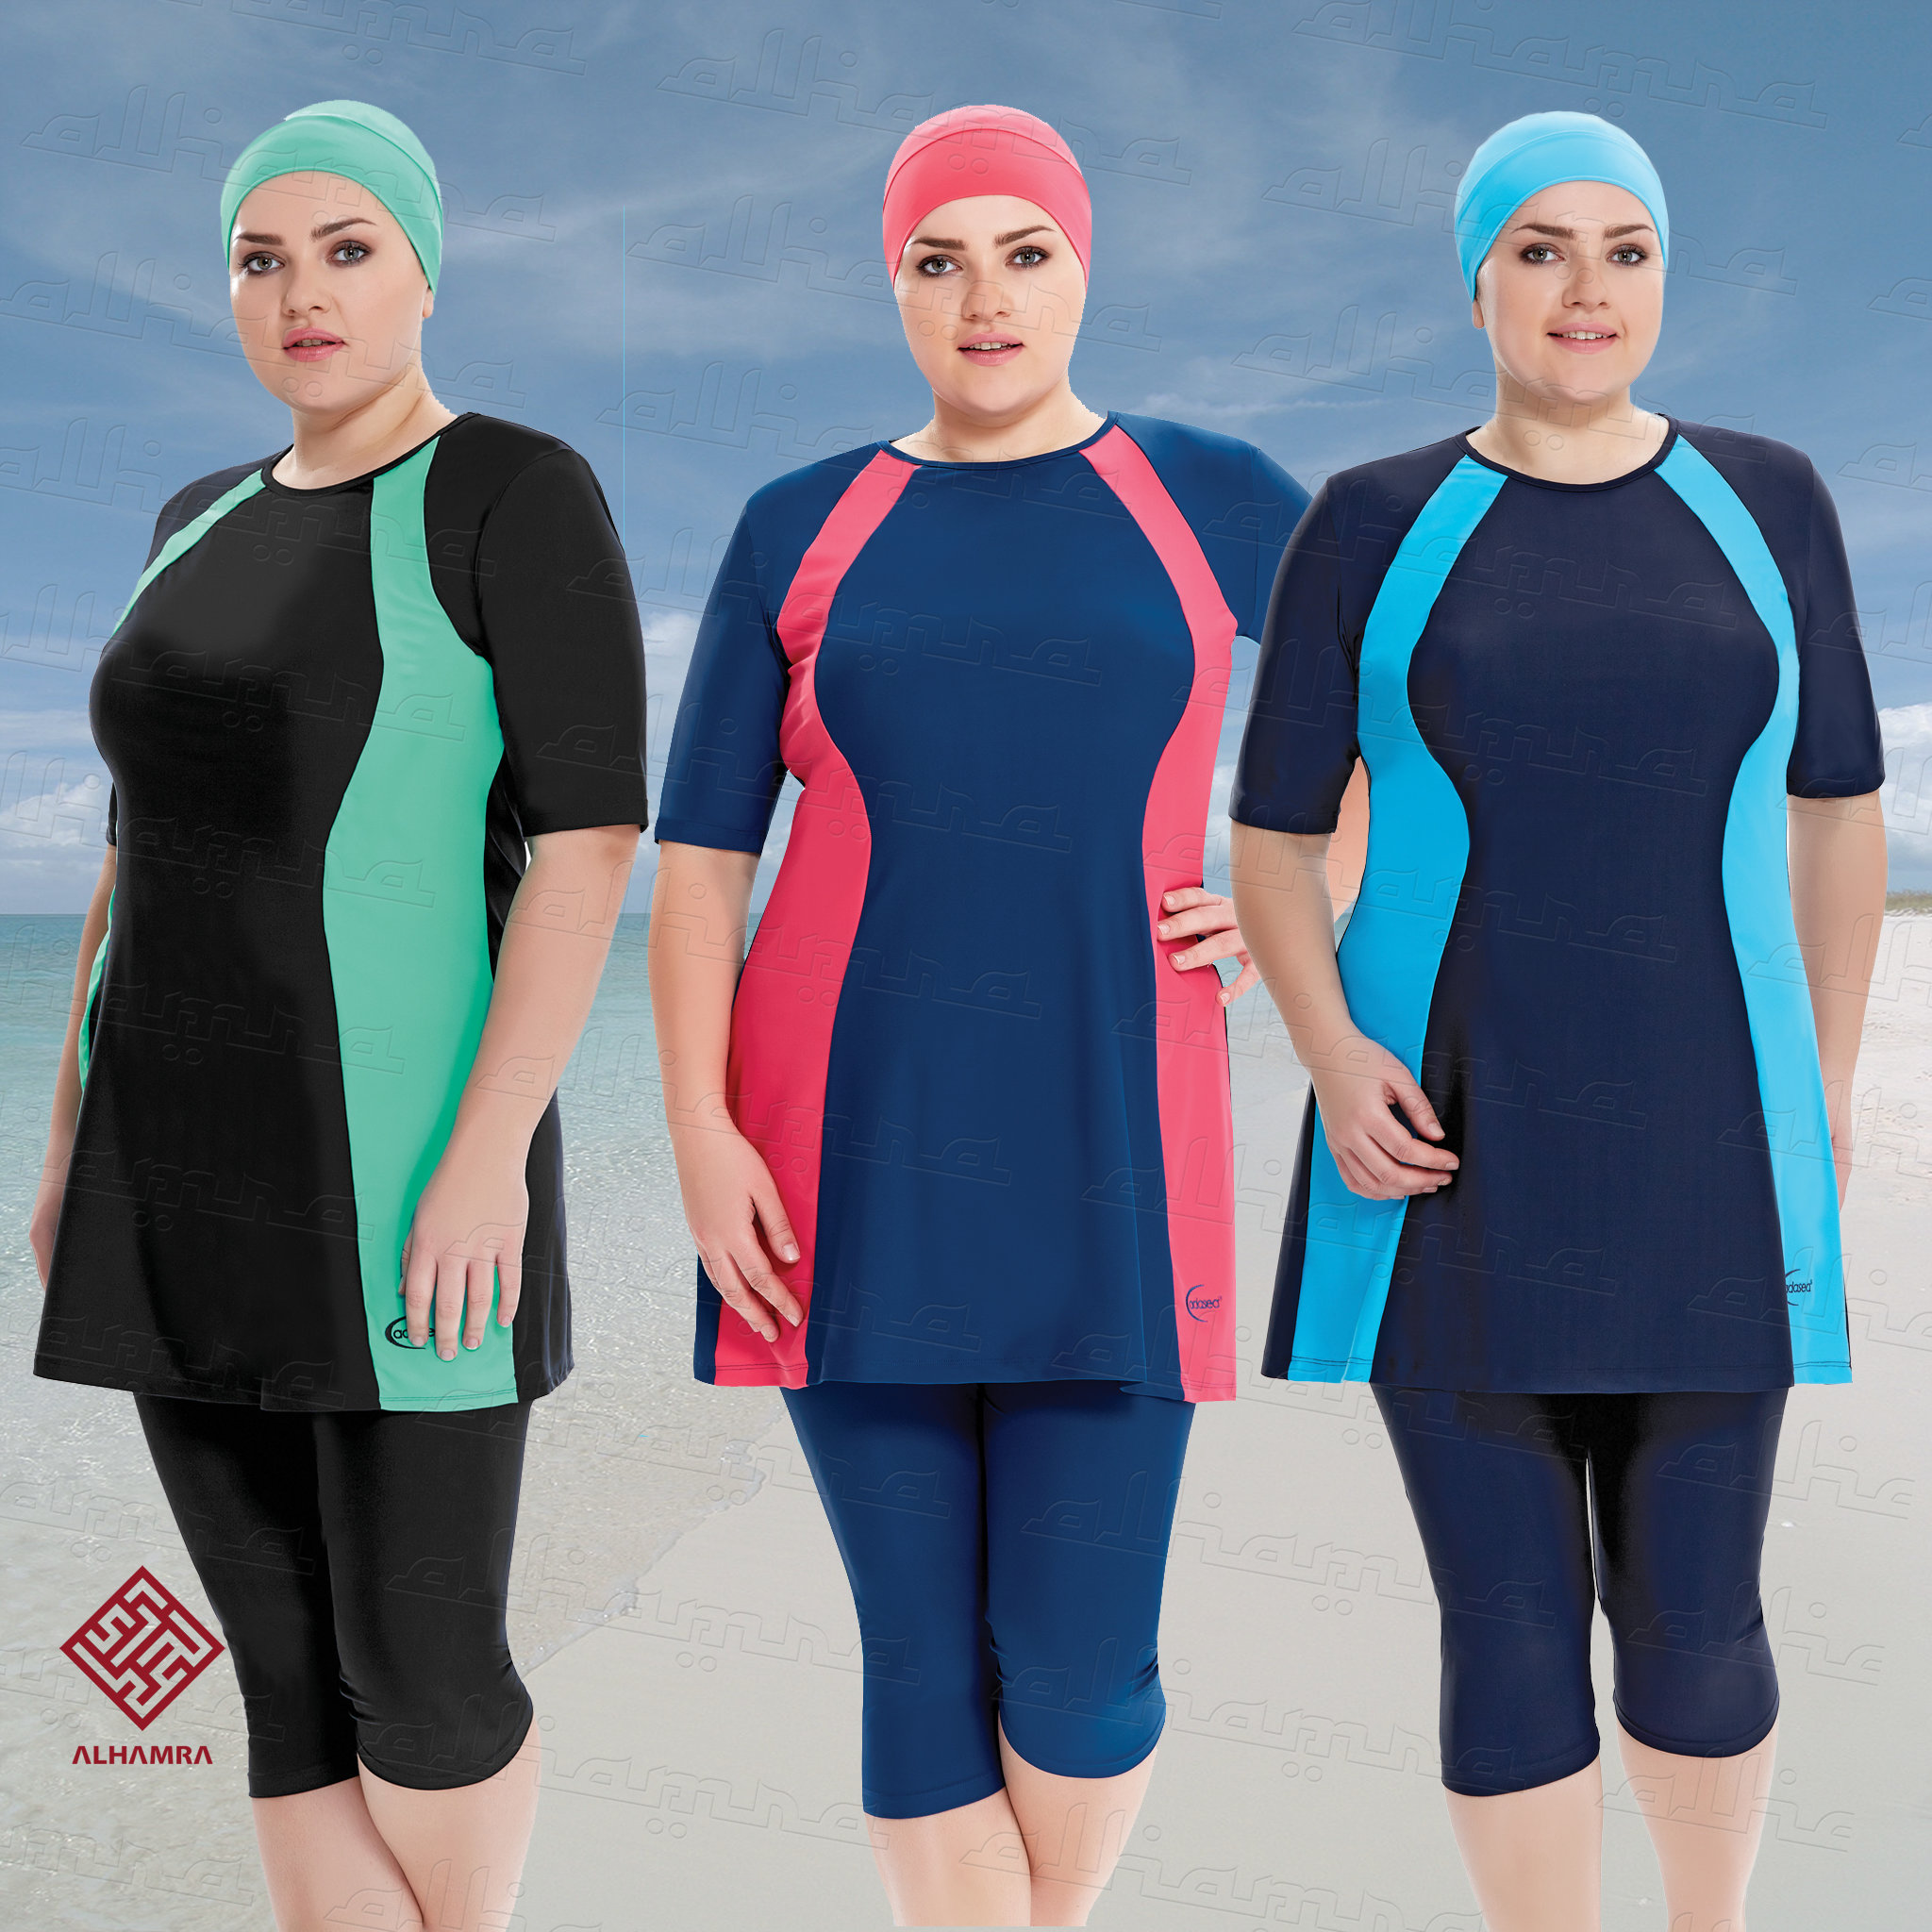 AlHamra Semi Cover Marina Burkini Modest Women Swimsuit ...